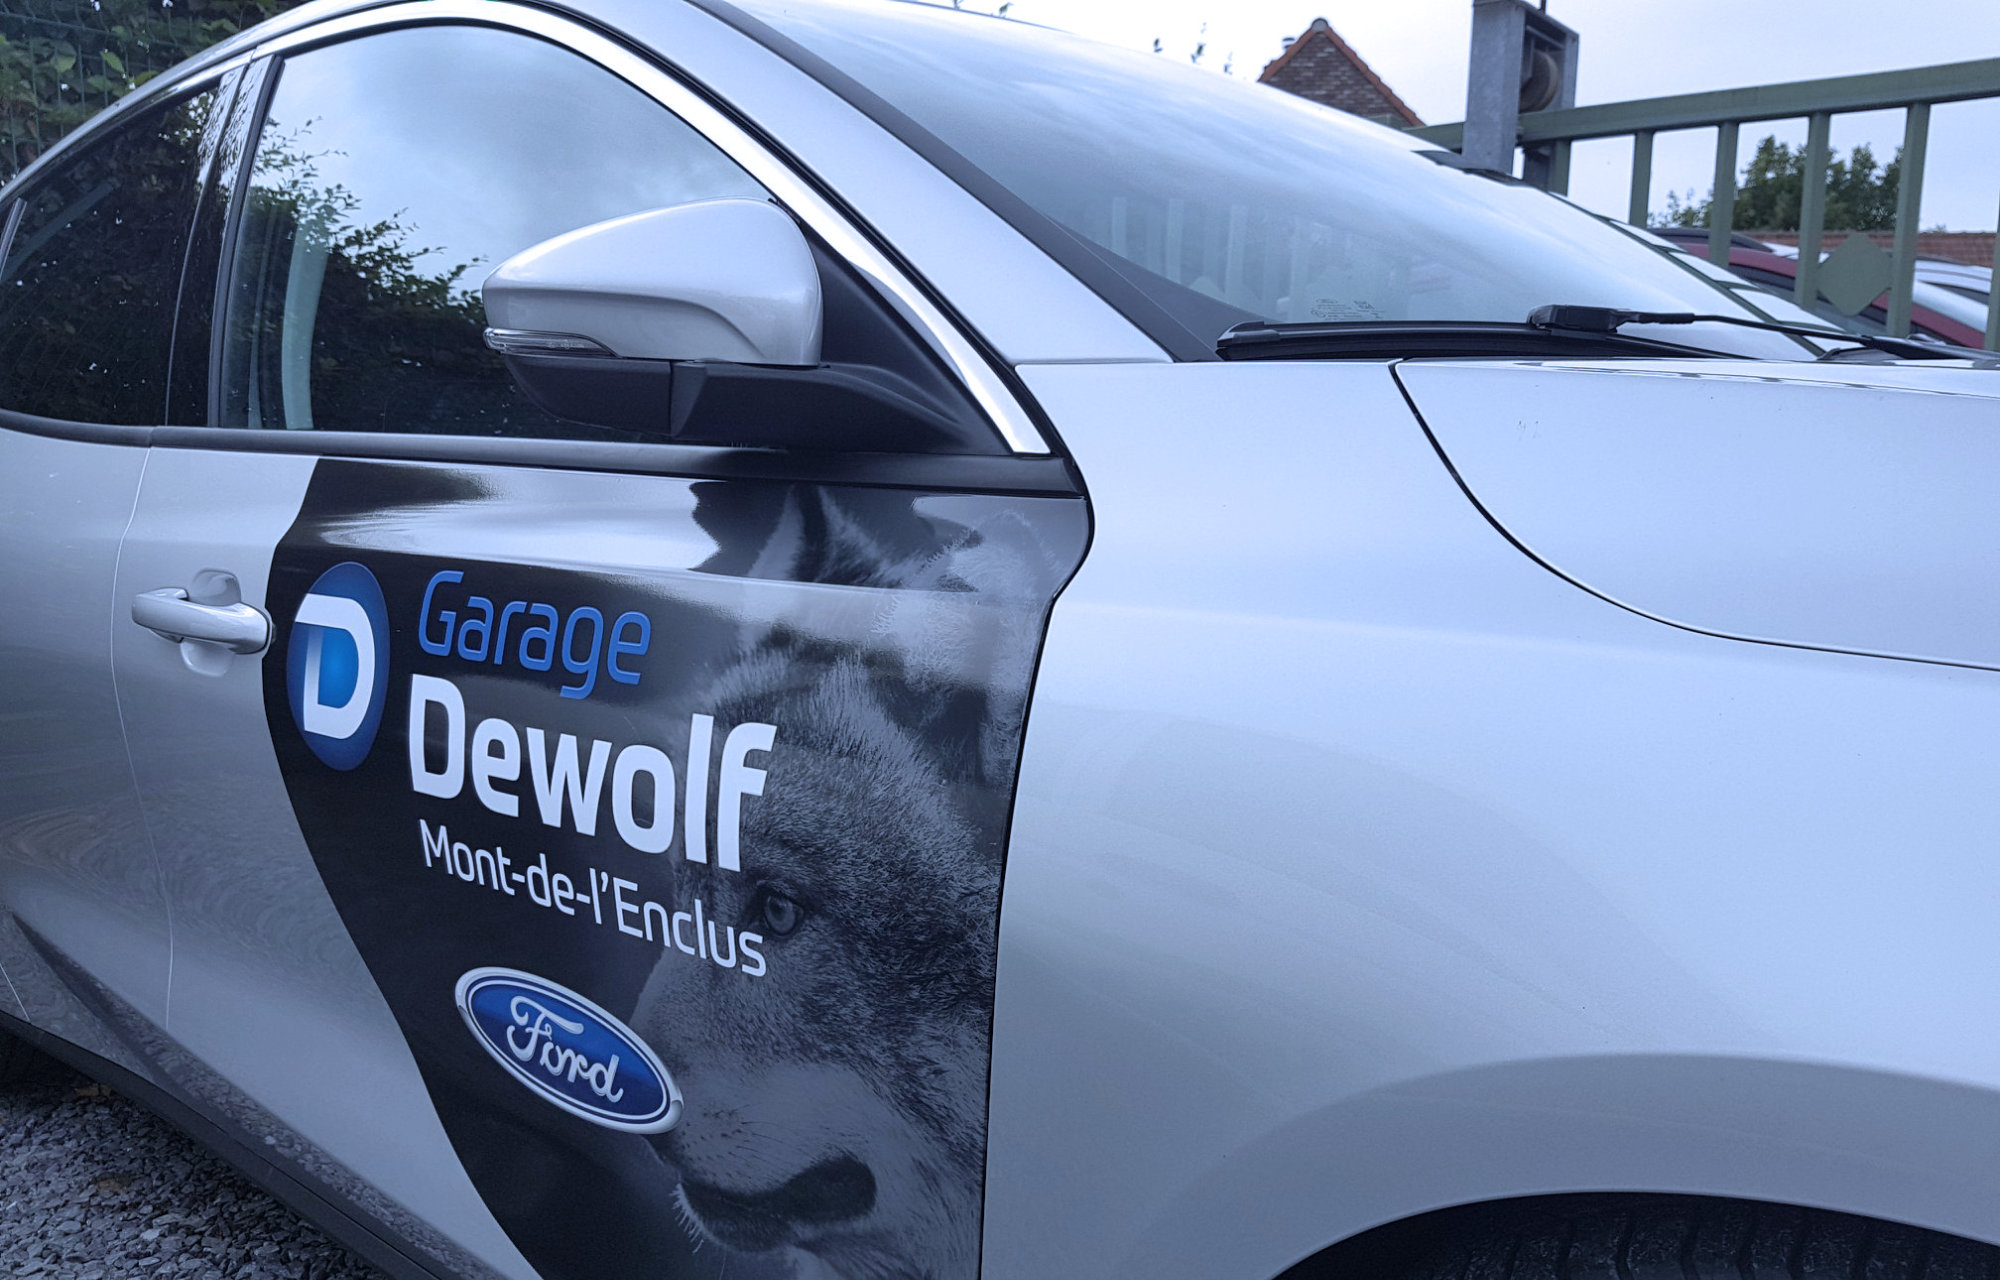 Garage Ford Dewolf